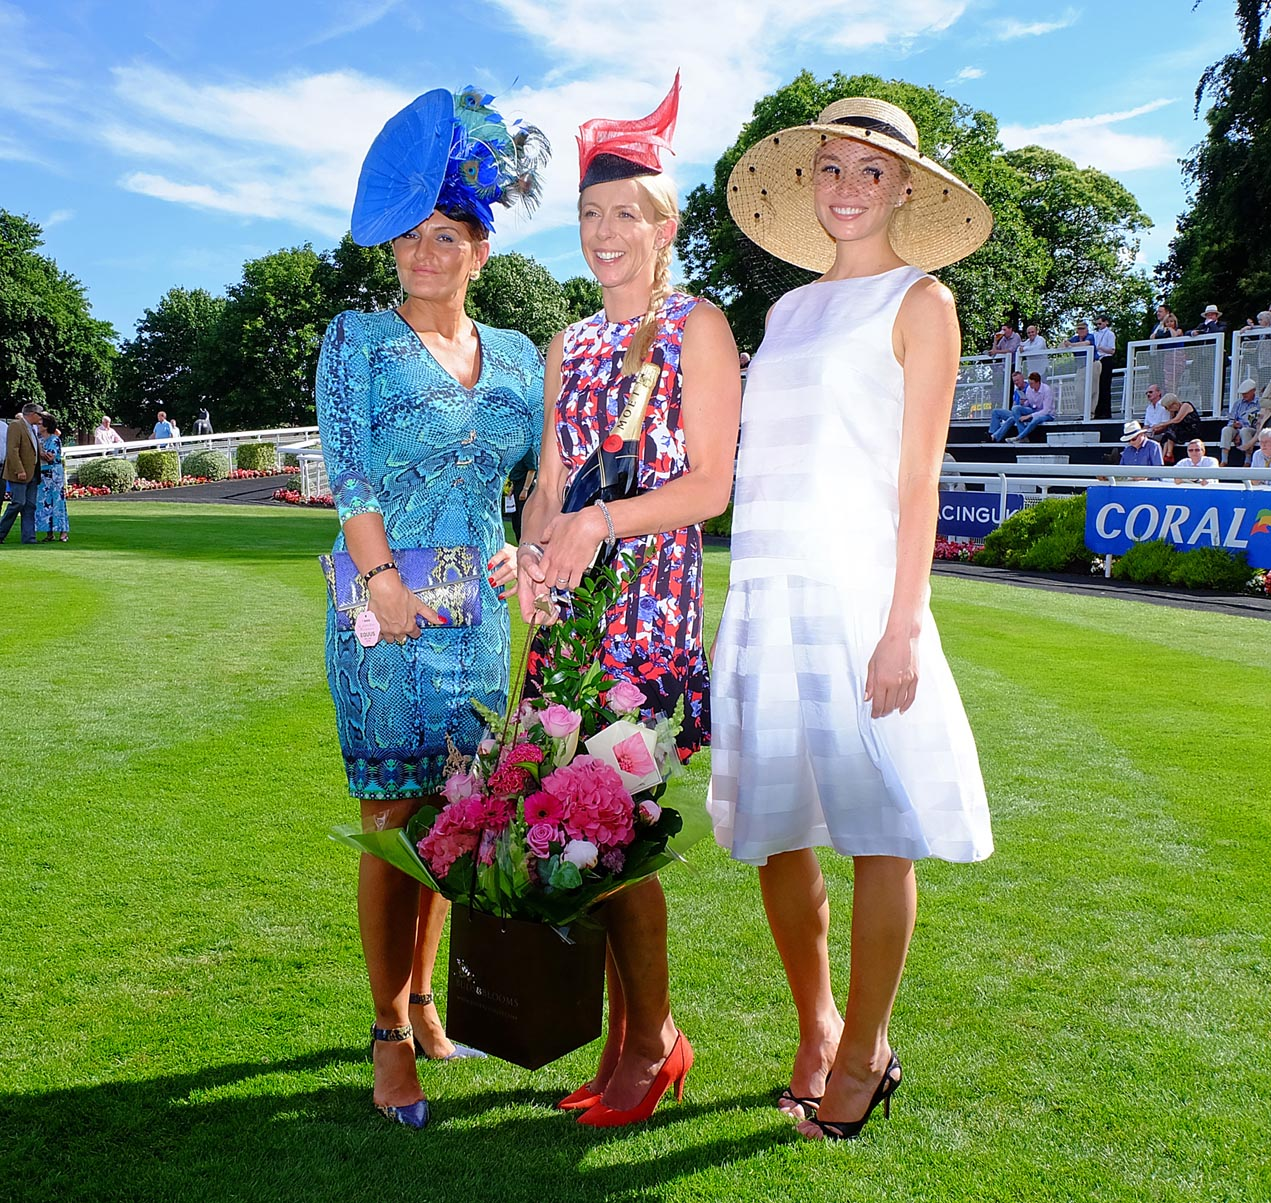 Best Dressed Lady Gail McLean (centre) with judges Ilda di Vico (left) and Noelle Reno (right).